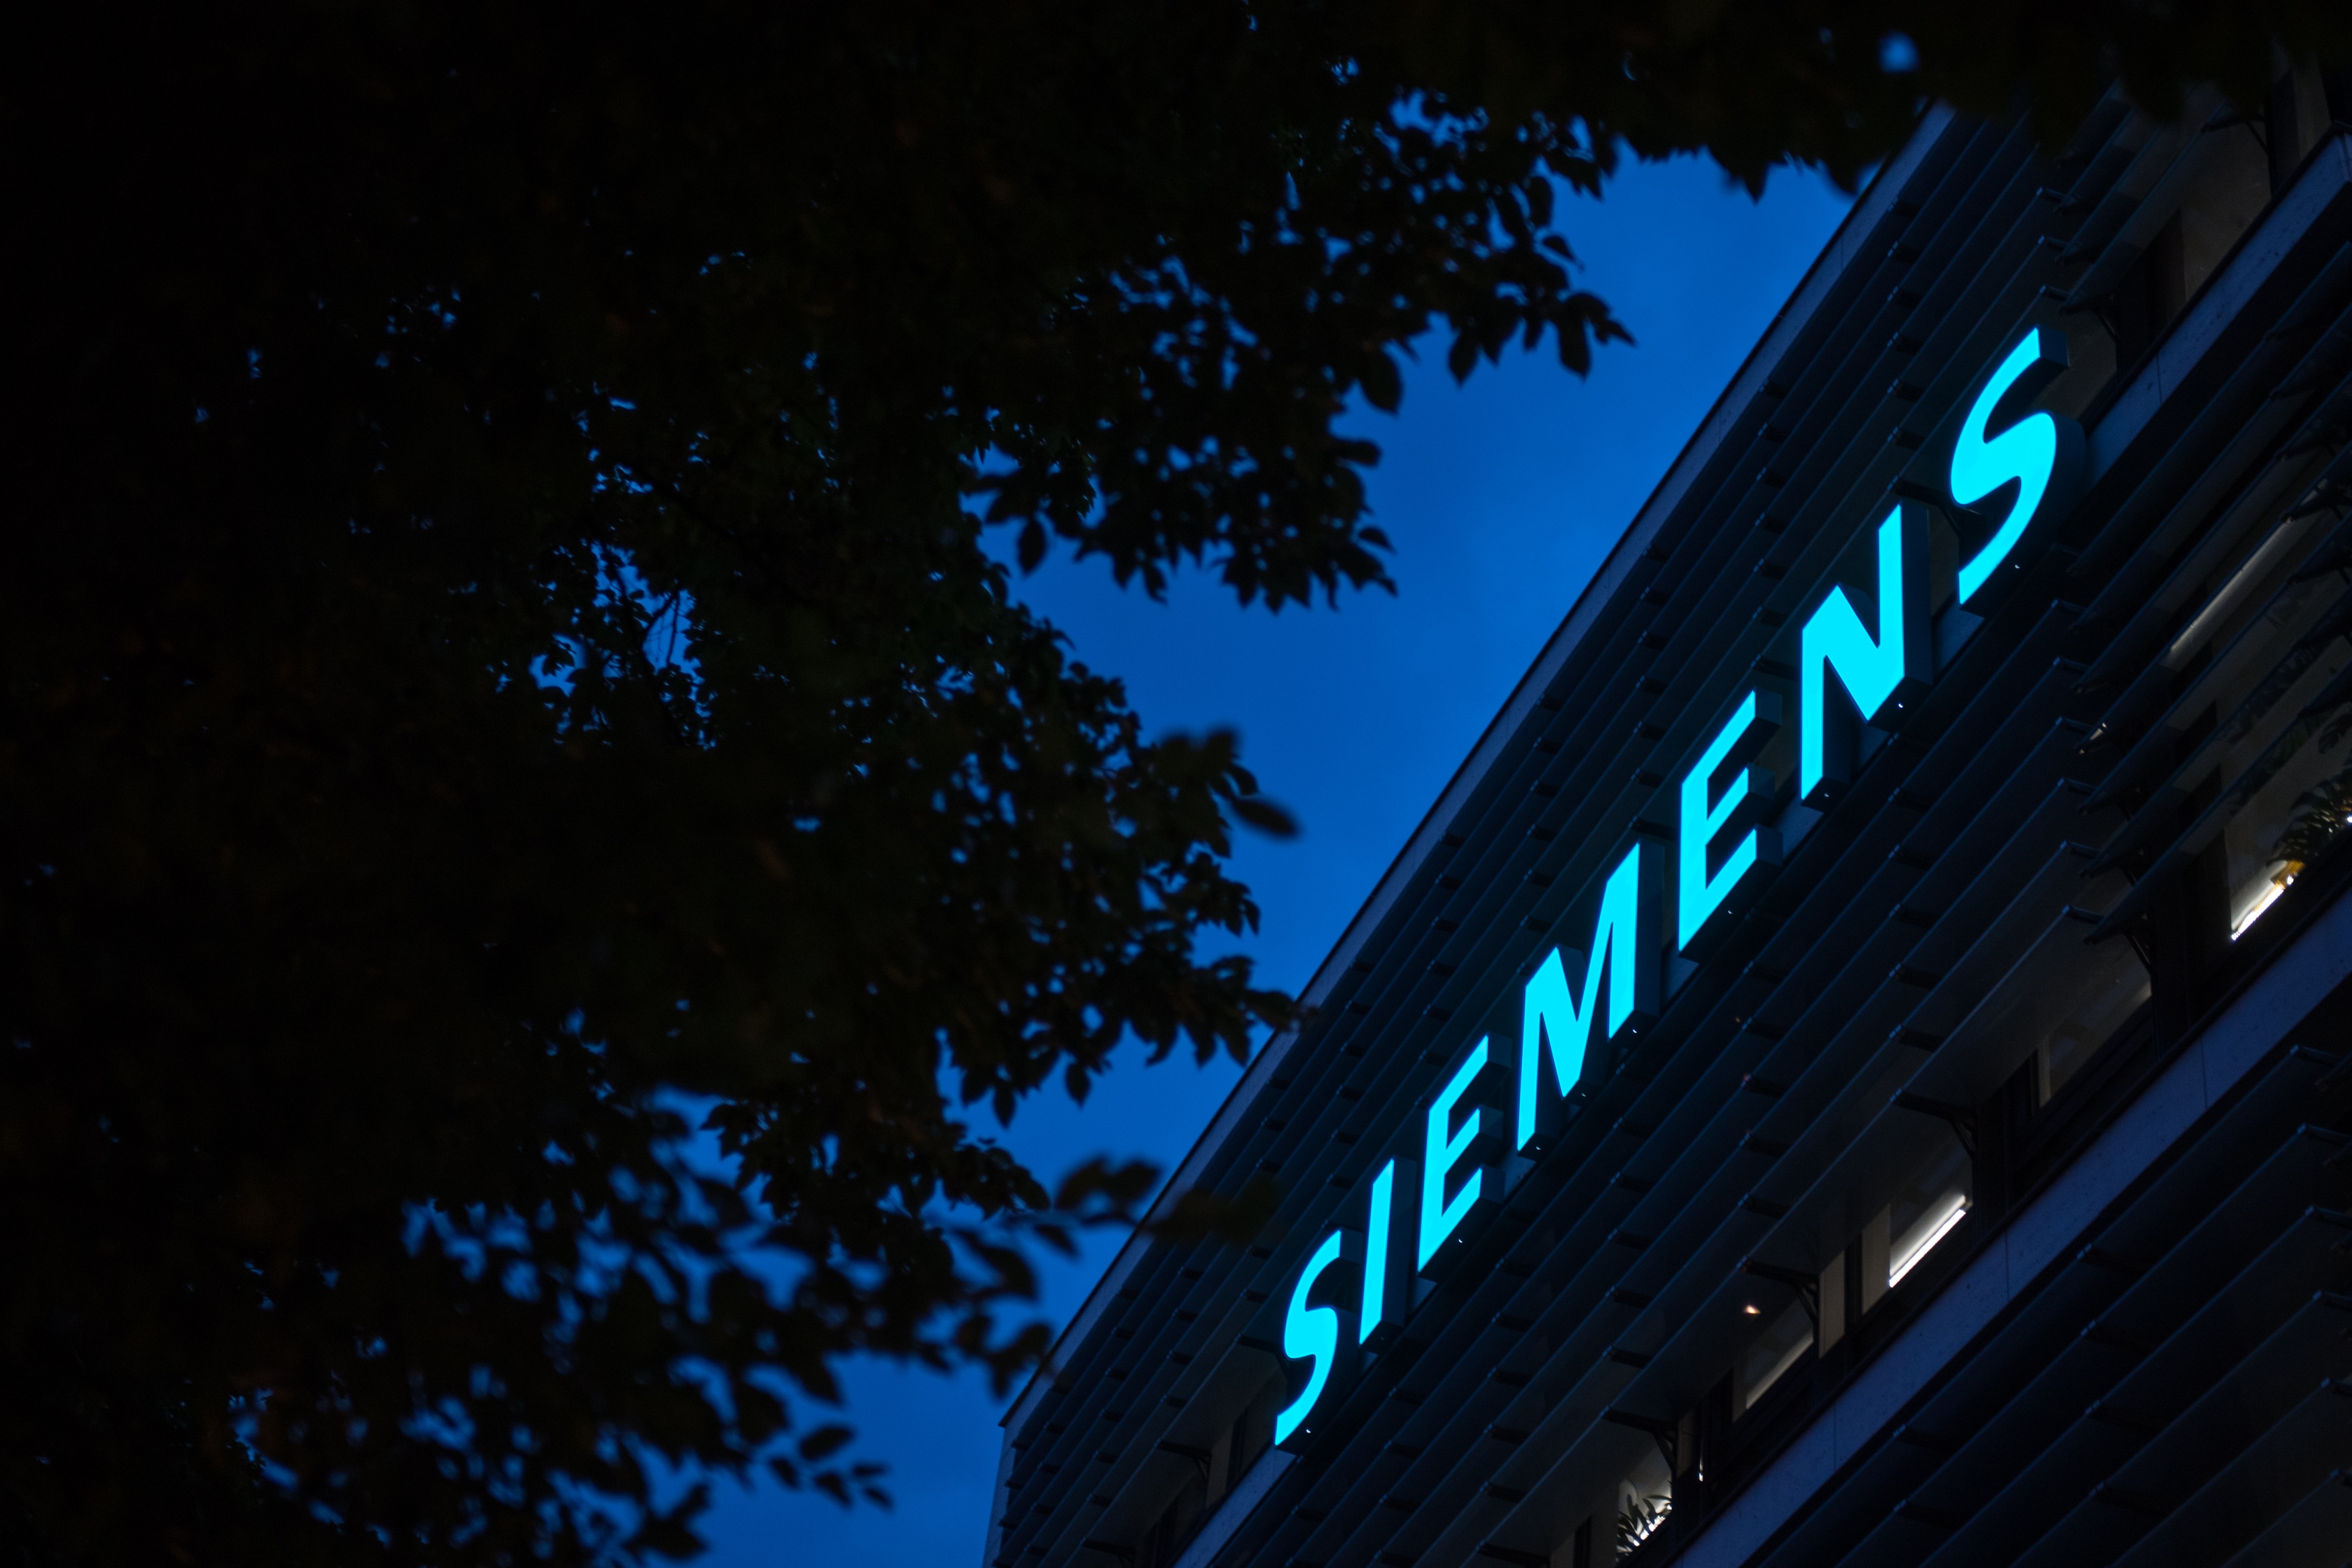 The headquarters of Siemens.